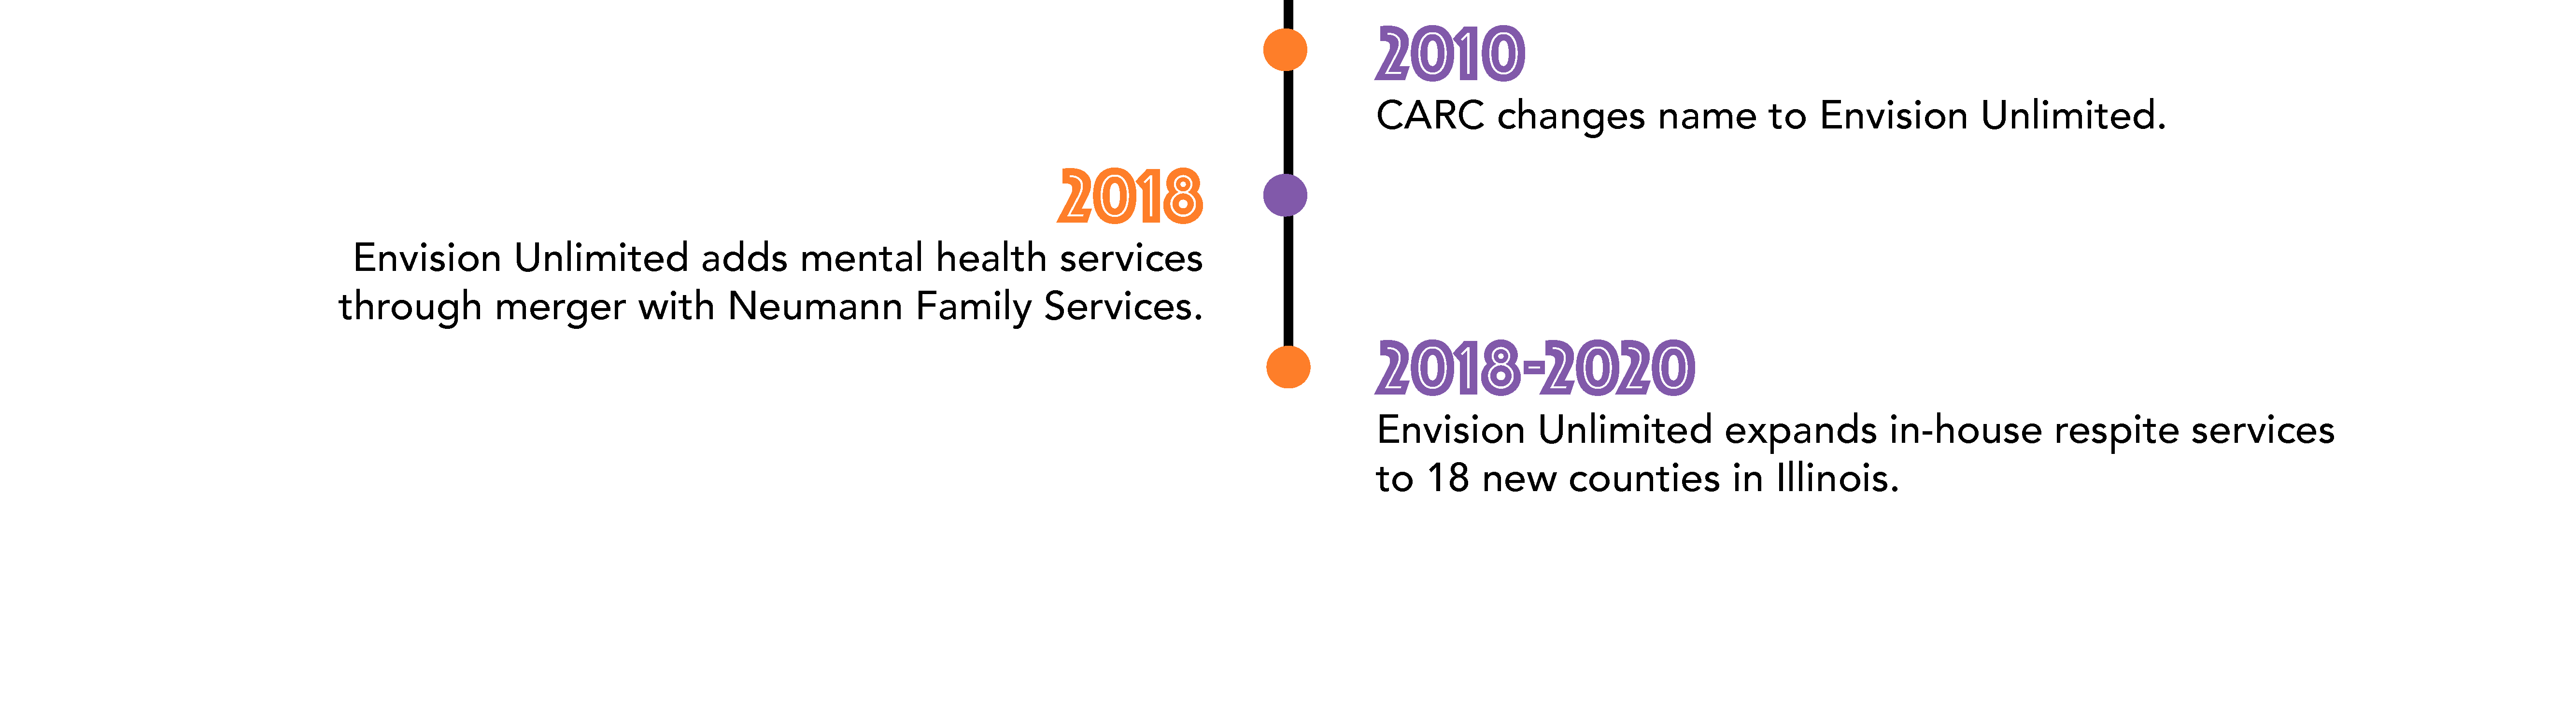 In 2010, CARC changes name to Envision Unlimited. In 2018, the organization adds mental health services through a merger with Neumann Family Services. Since 2018, Envision Unlimited has expanded in-house respite services to 18 new counties in Illinois.